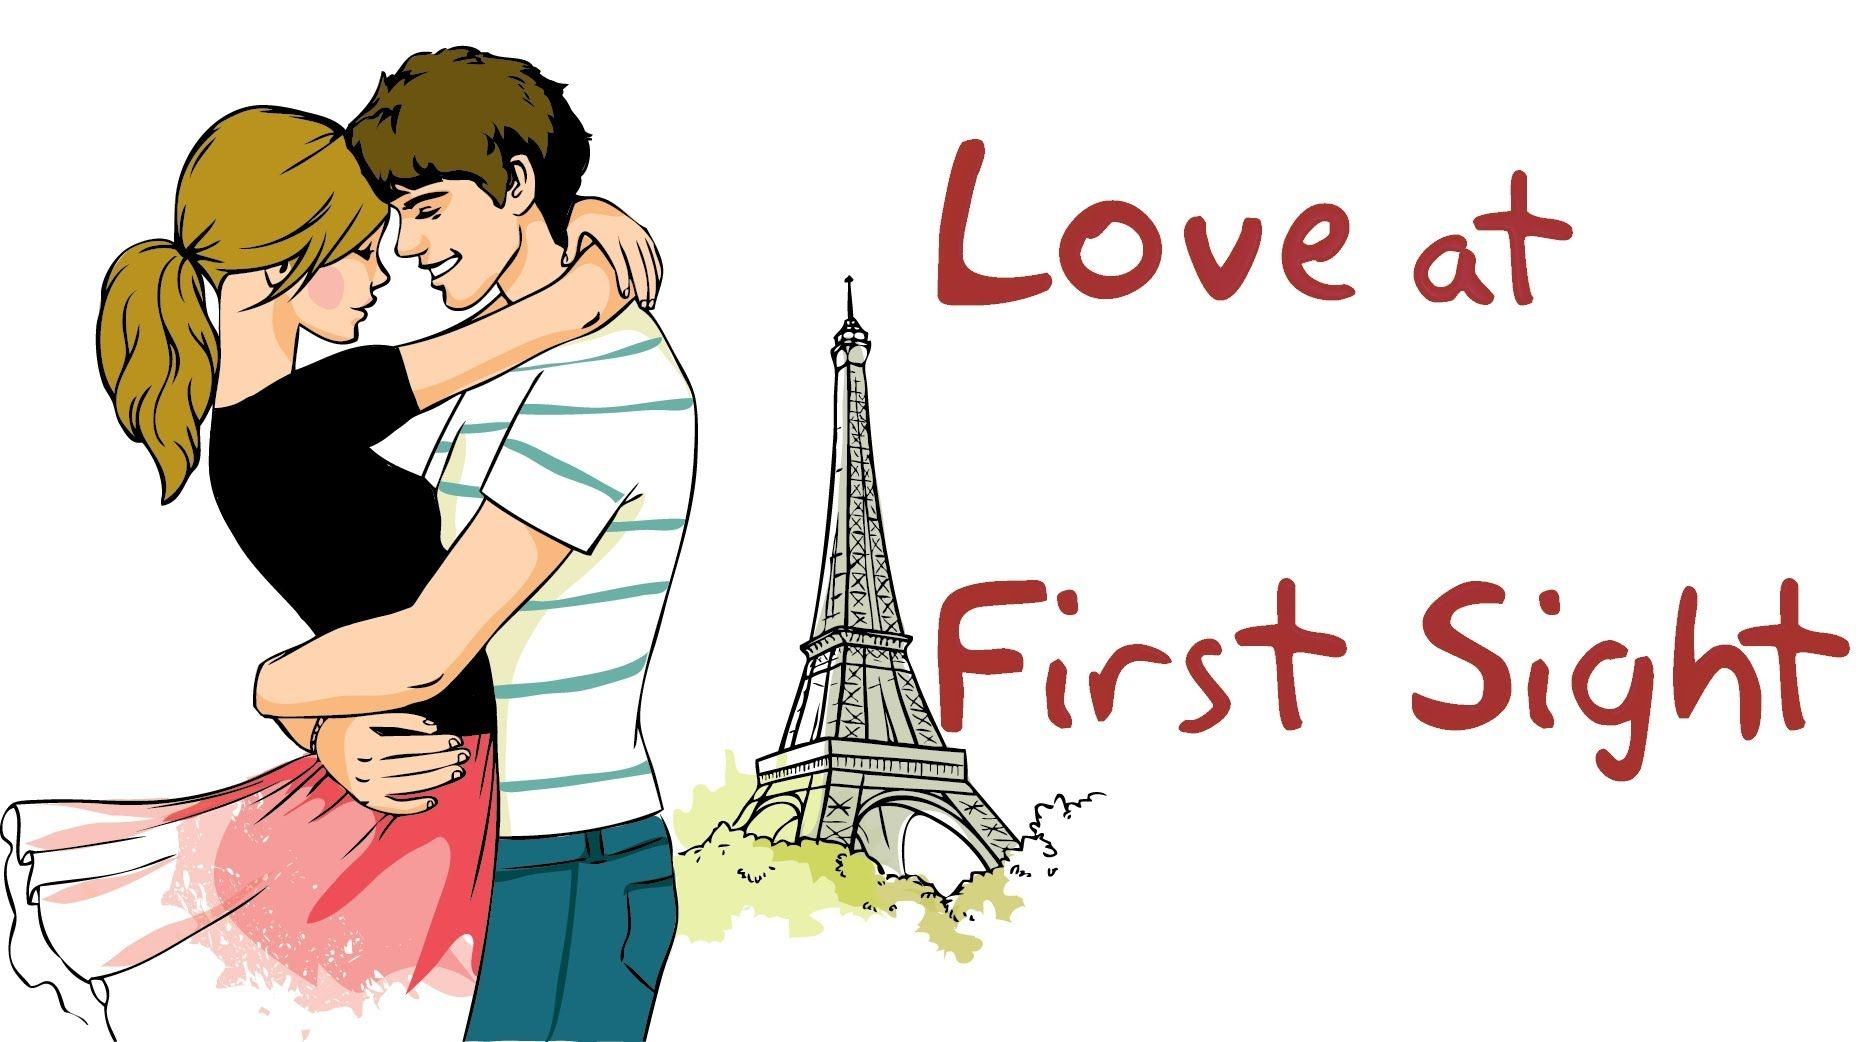 Download Images Of Love At First Sight Does Love At First Sight